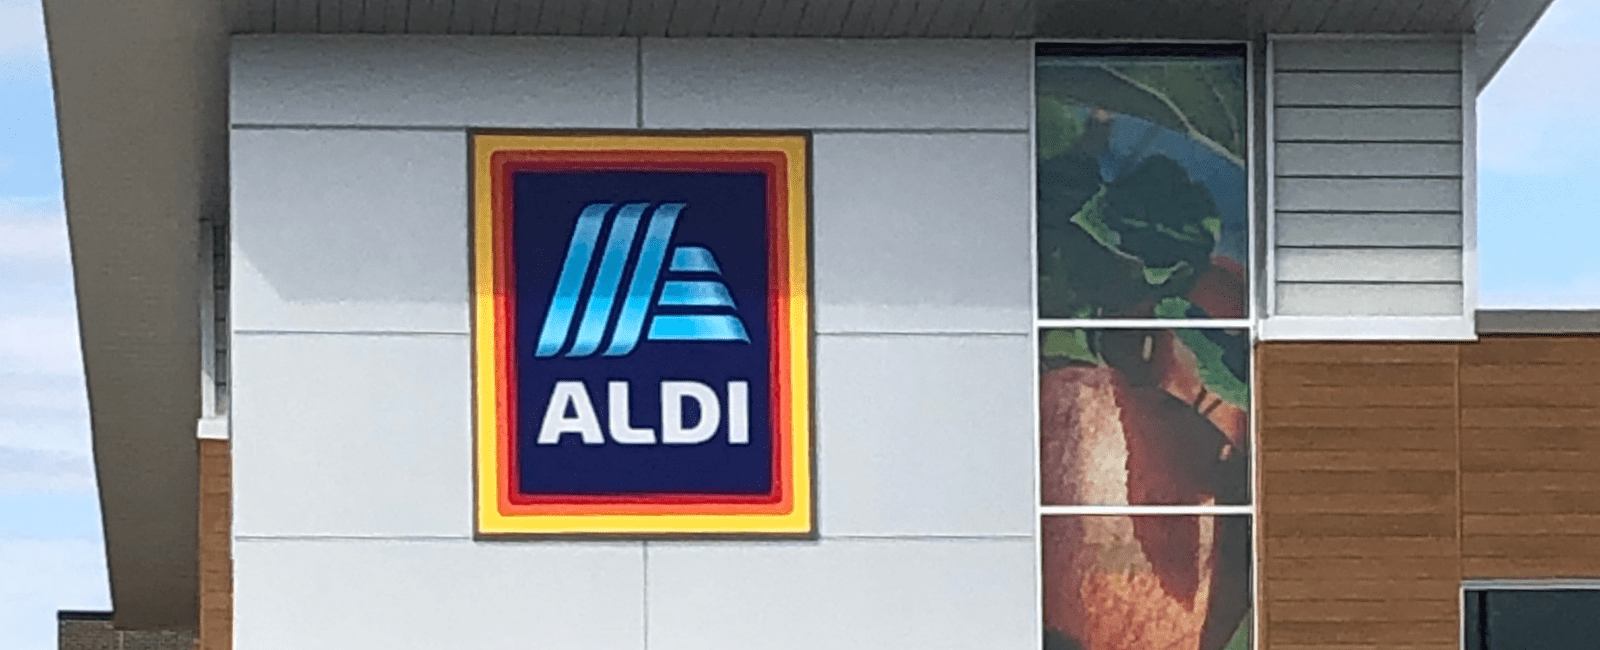 20 Things to Never Buy at Aldi